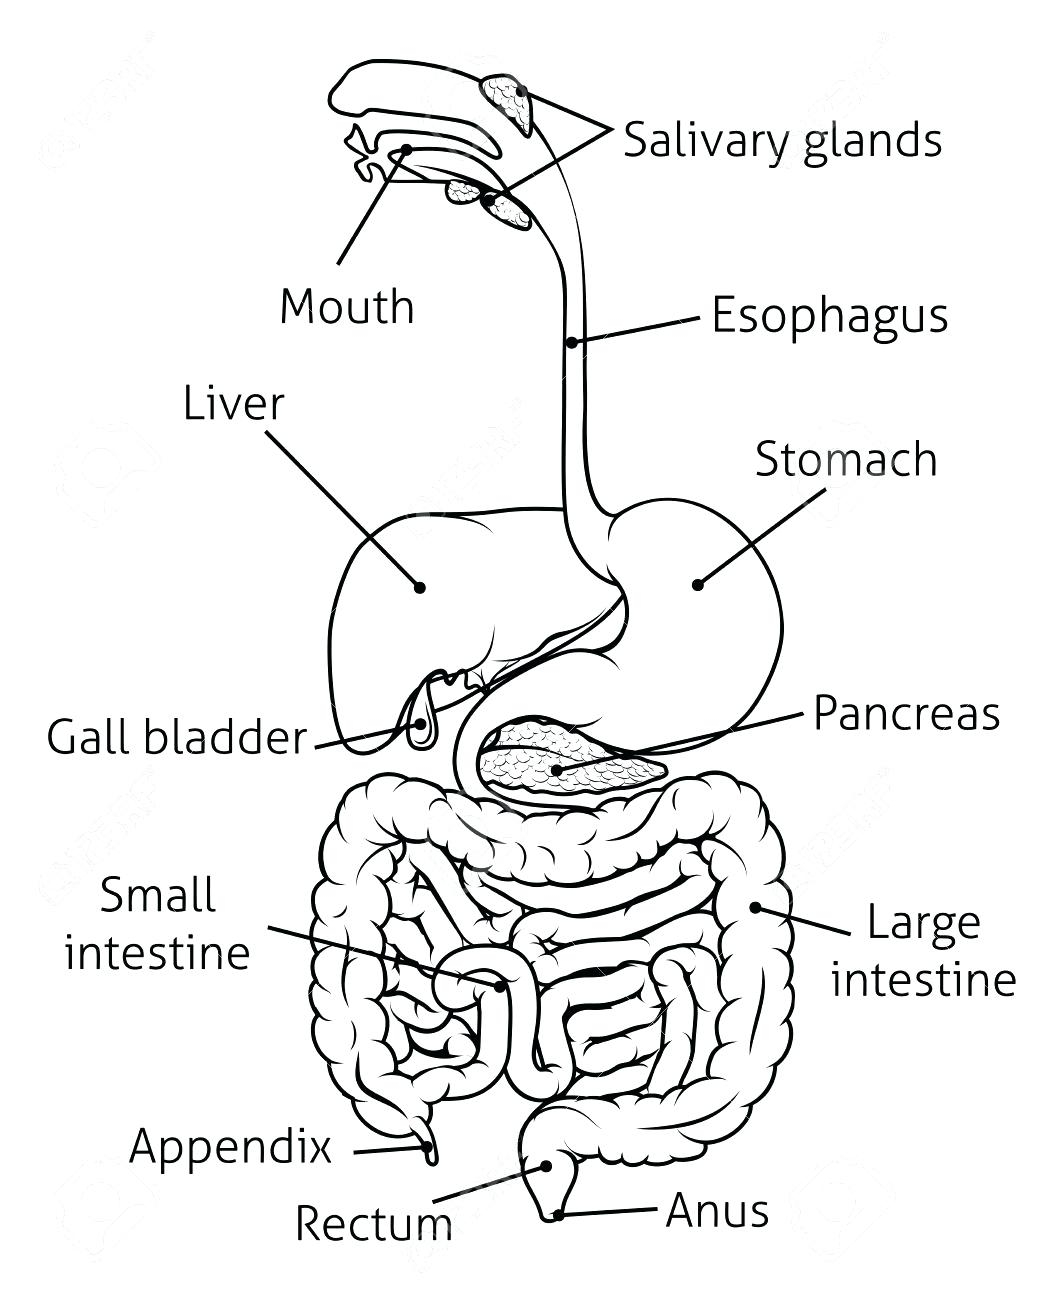 Digestive System Diagram Worksheet Digestive System Drawing At Getdrawings Free For Personal Use